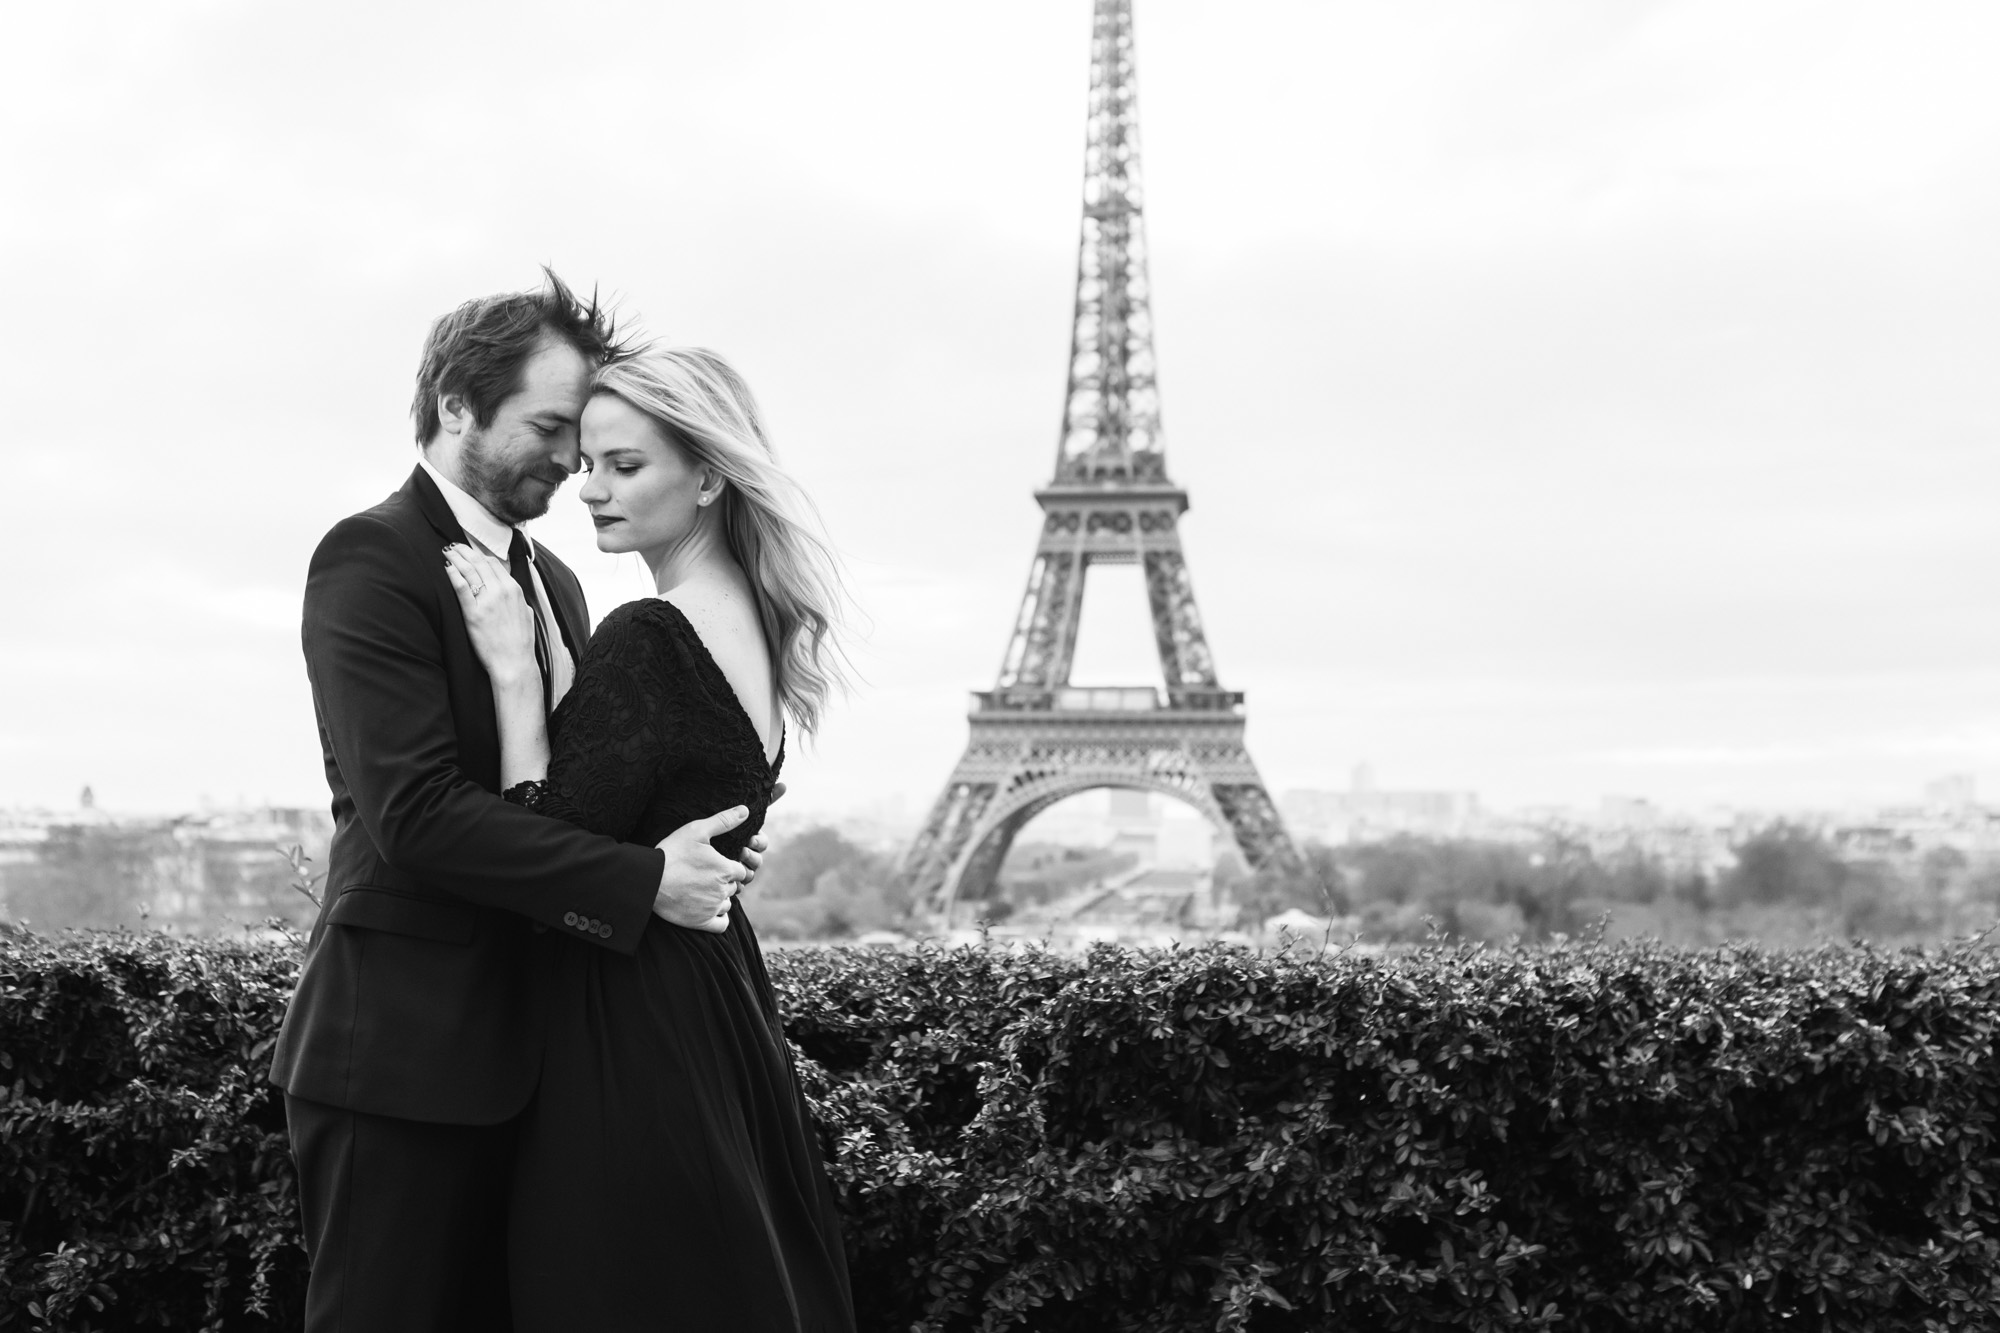 Paris engagement couple portrait in black and white by the Eiffel Tower captured by Paris Photographer Federico Guendel